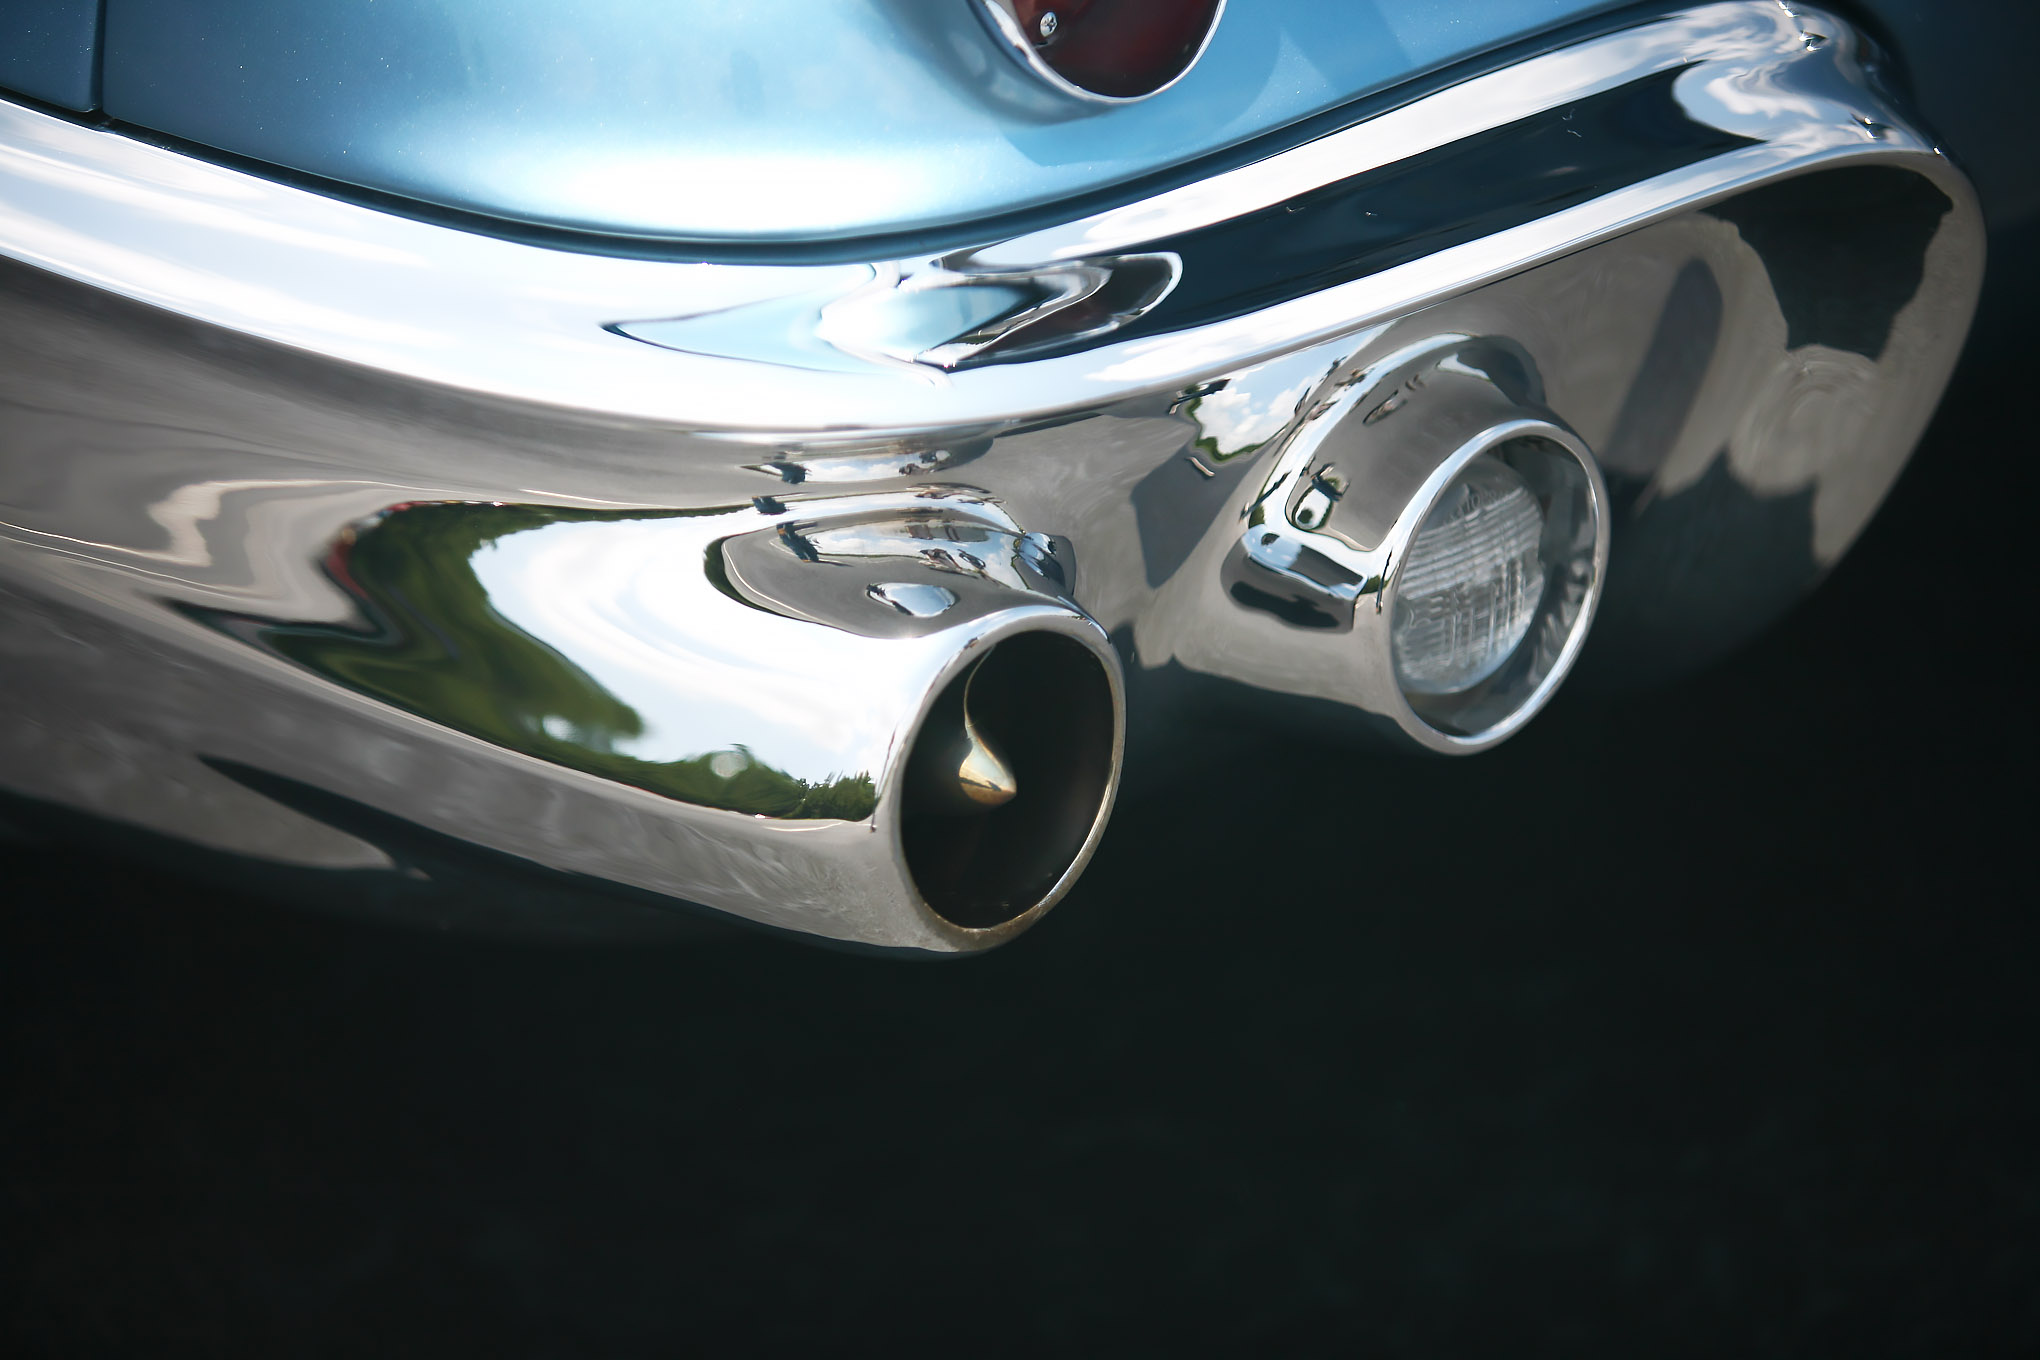 The bumpers are cast aluminum and double as exhaust exits.